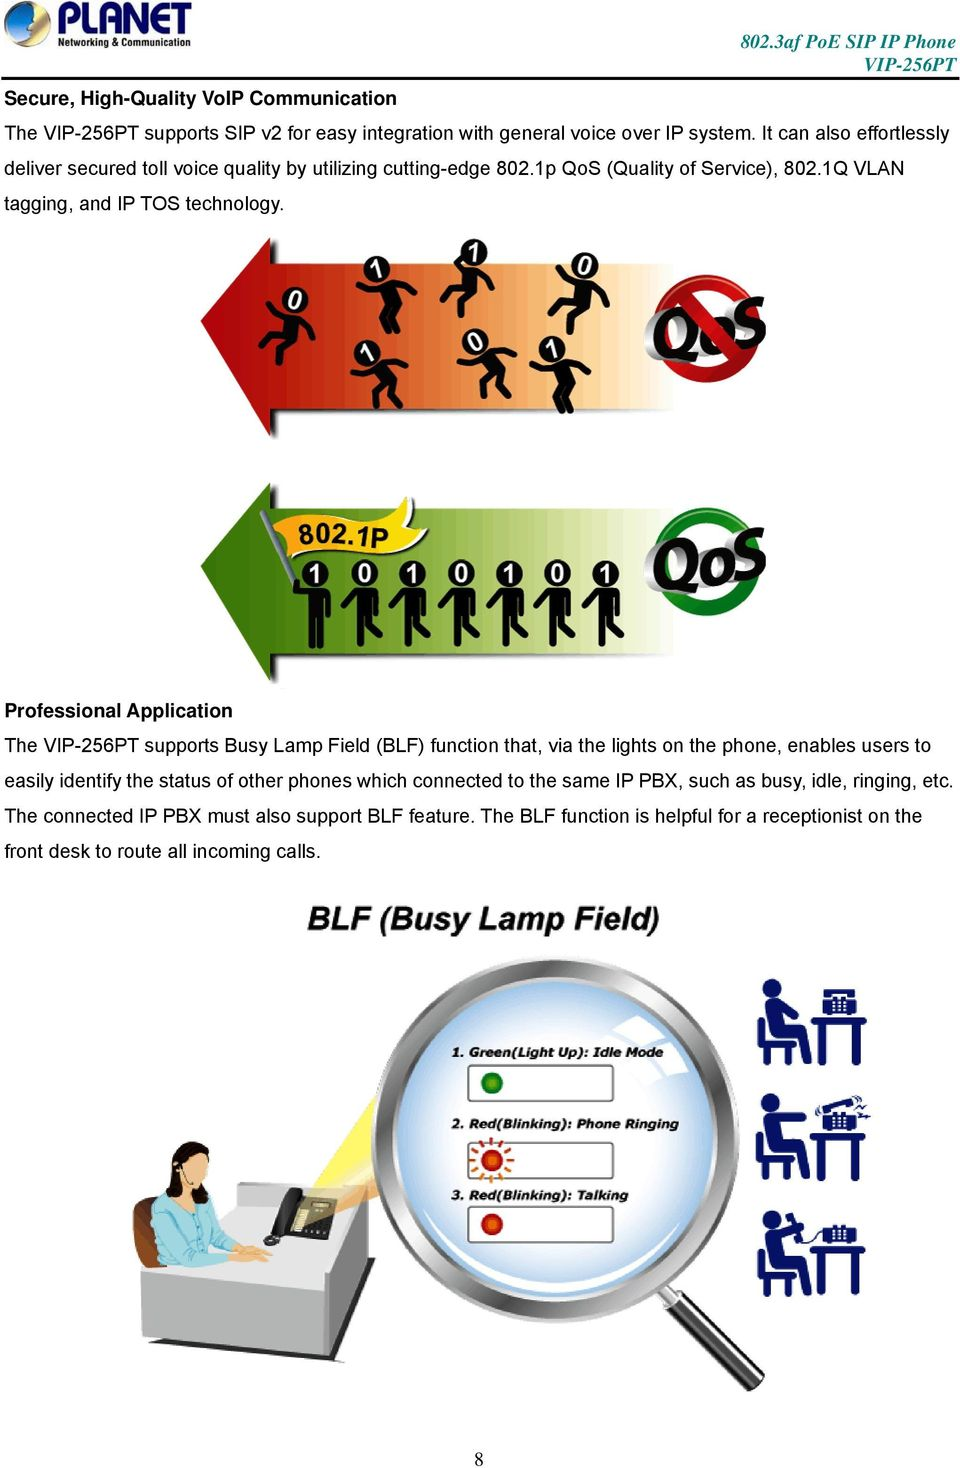 Professional Application The supports Busy Lamp Field (BLF) function that, via the lights on the phone, enables users to easily identify the status of other phones